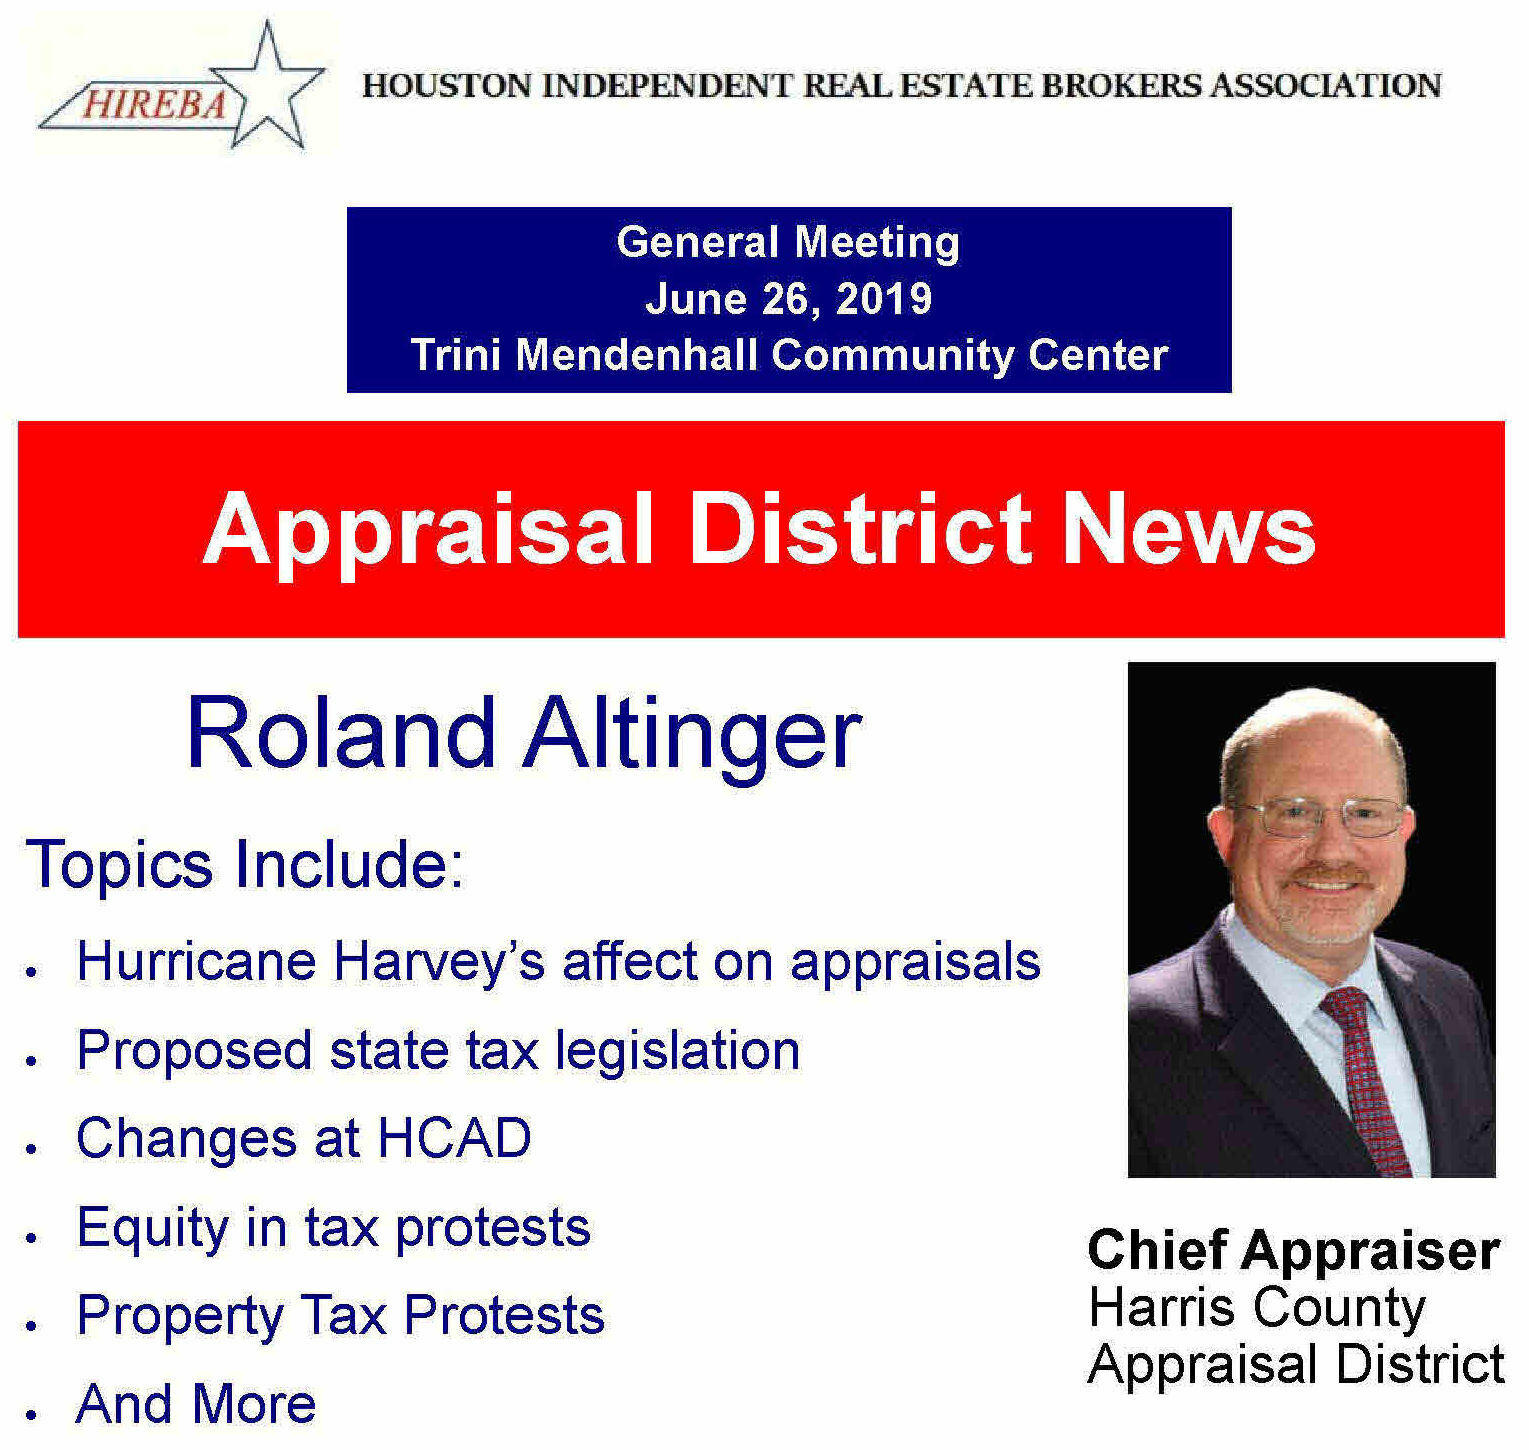 Roland Altinger - June 26, 2019